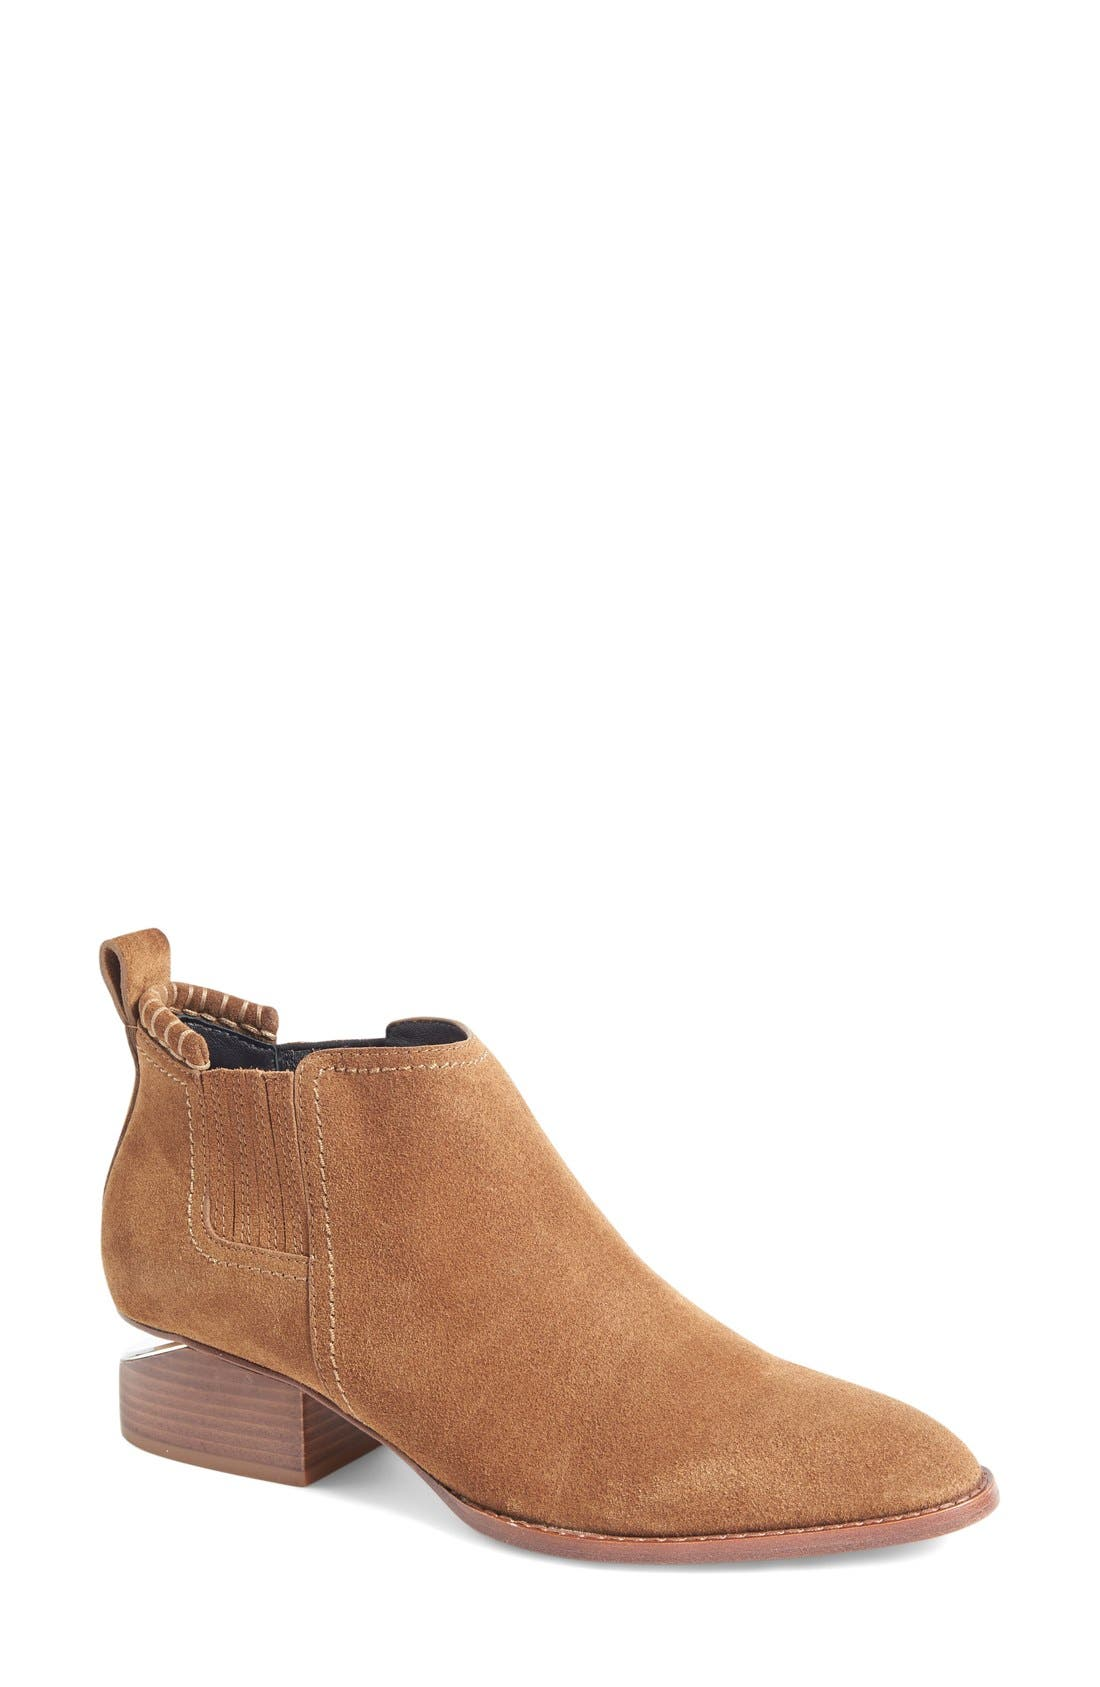 Kori Chelsea Boot,                         Main,                         color, Dark Truffle